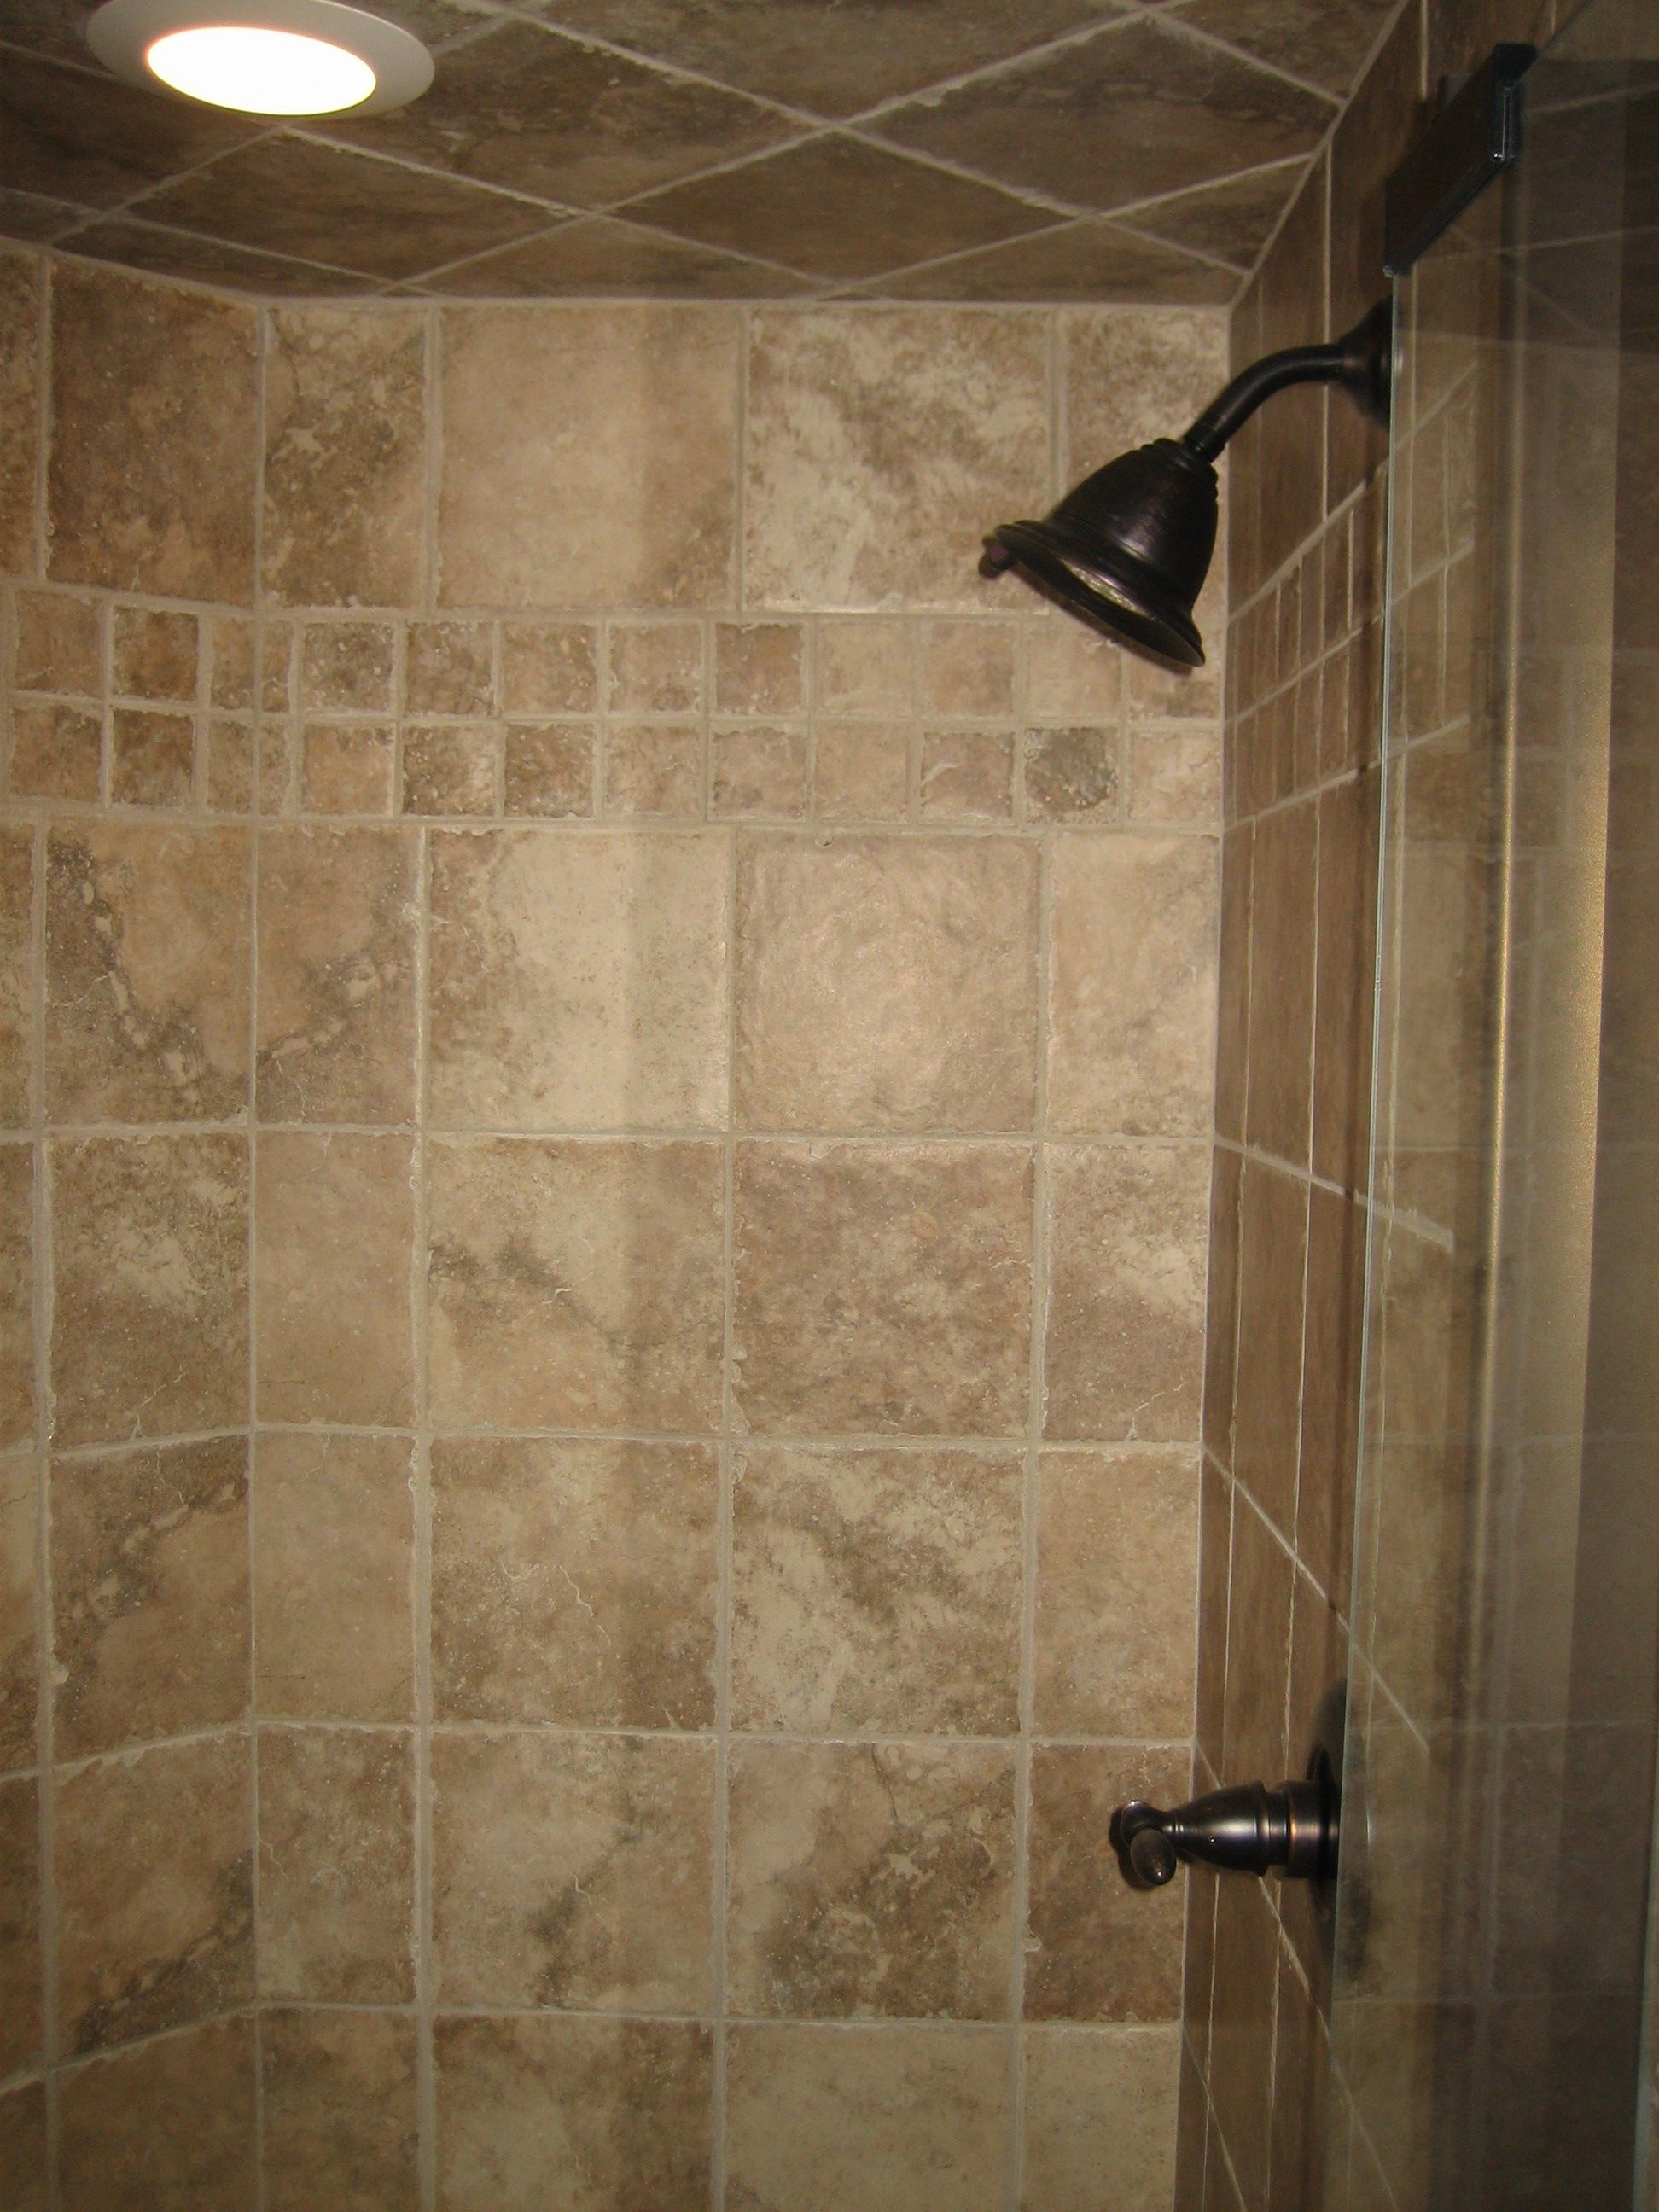 Shower With Band Insert Ceiling Tile 2 2008